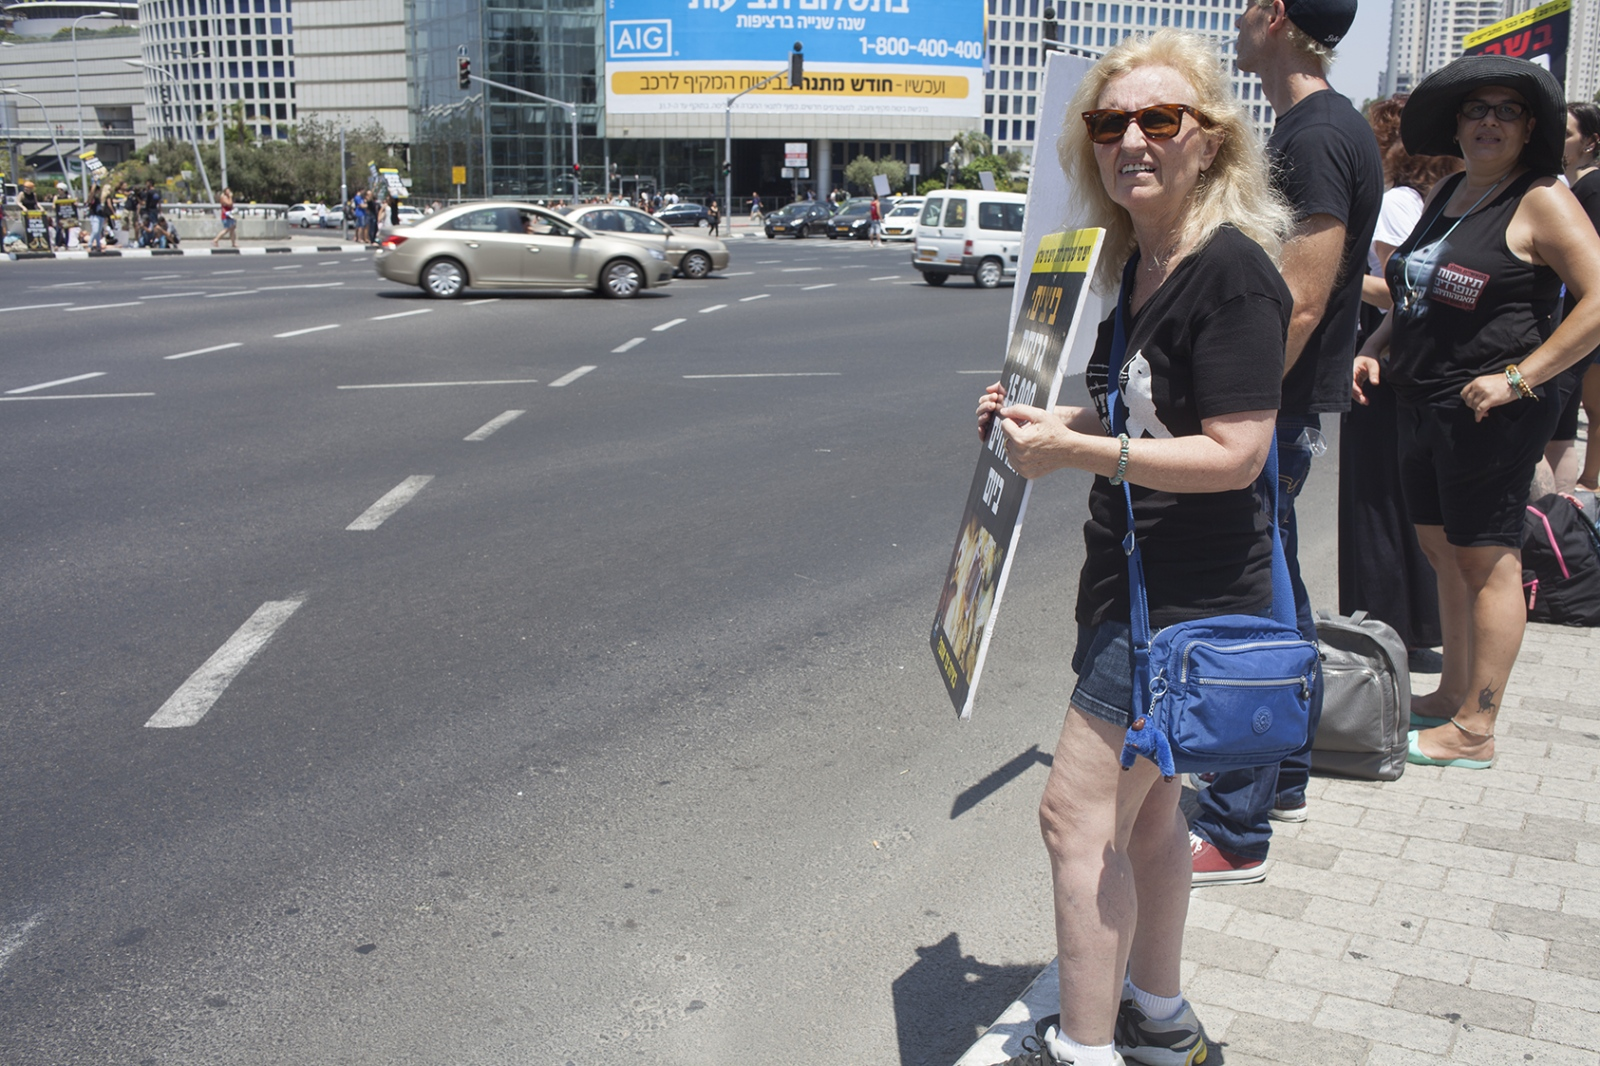 Lady protesting animal rights, Tel Aviv 2015.